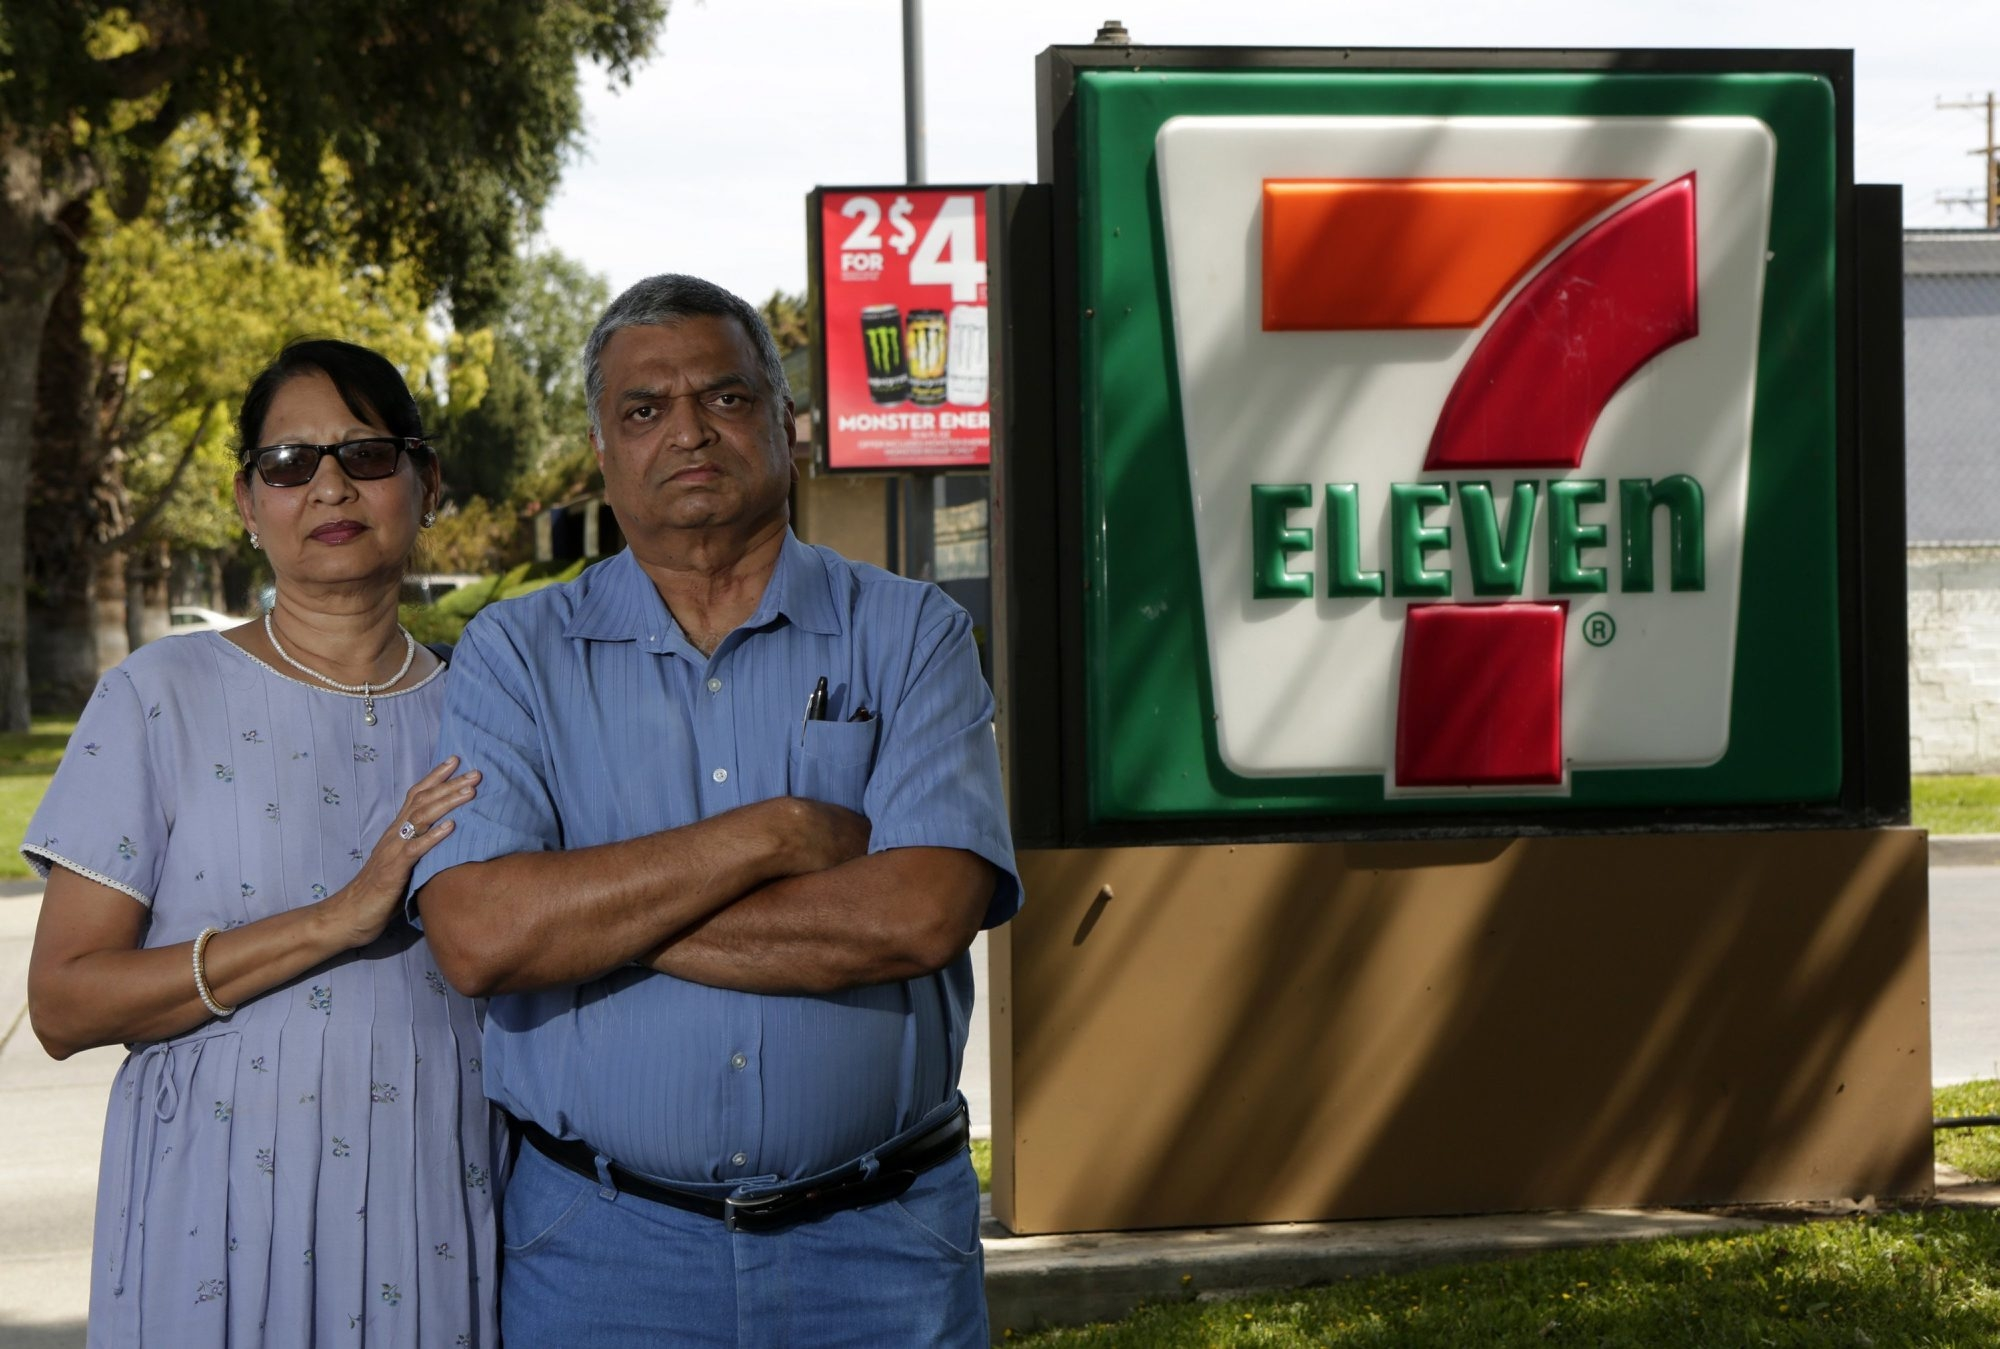 """Saroj Patel, left, and her husband, Dilip, allege 7-Eleven used """"storm trooper interrogation and isolation tactics"""" to strip them of the Riverside, Calif., store that they had run since 1995."""